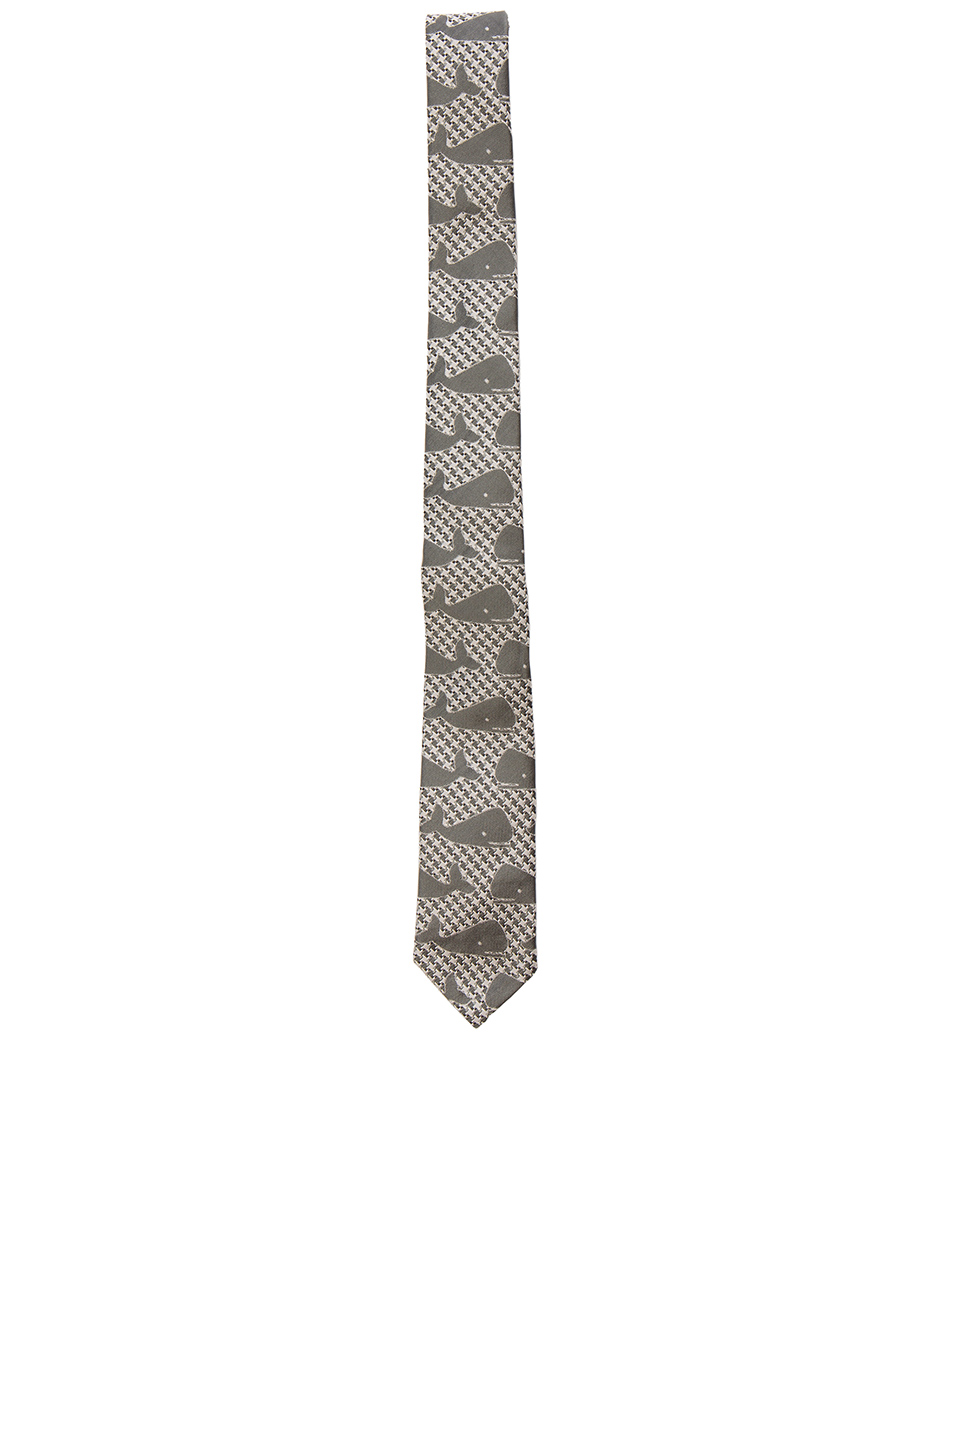 Thom Browne Whale Houndstooth Tie in Gray,Animal Print